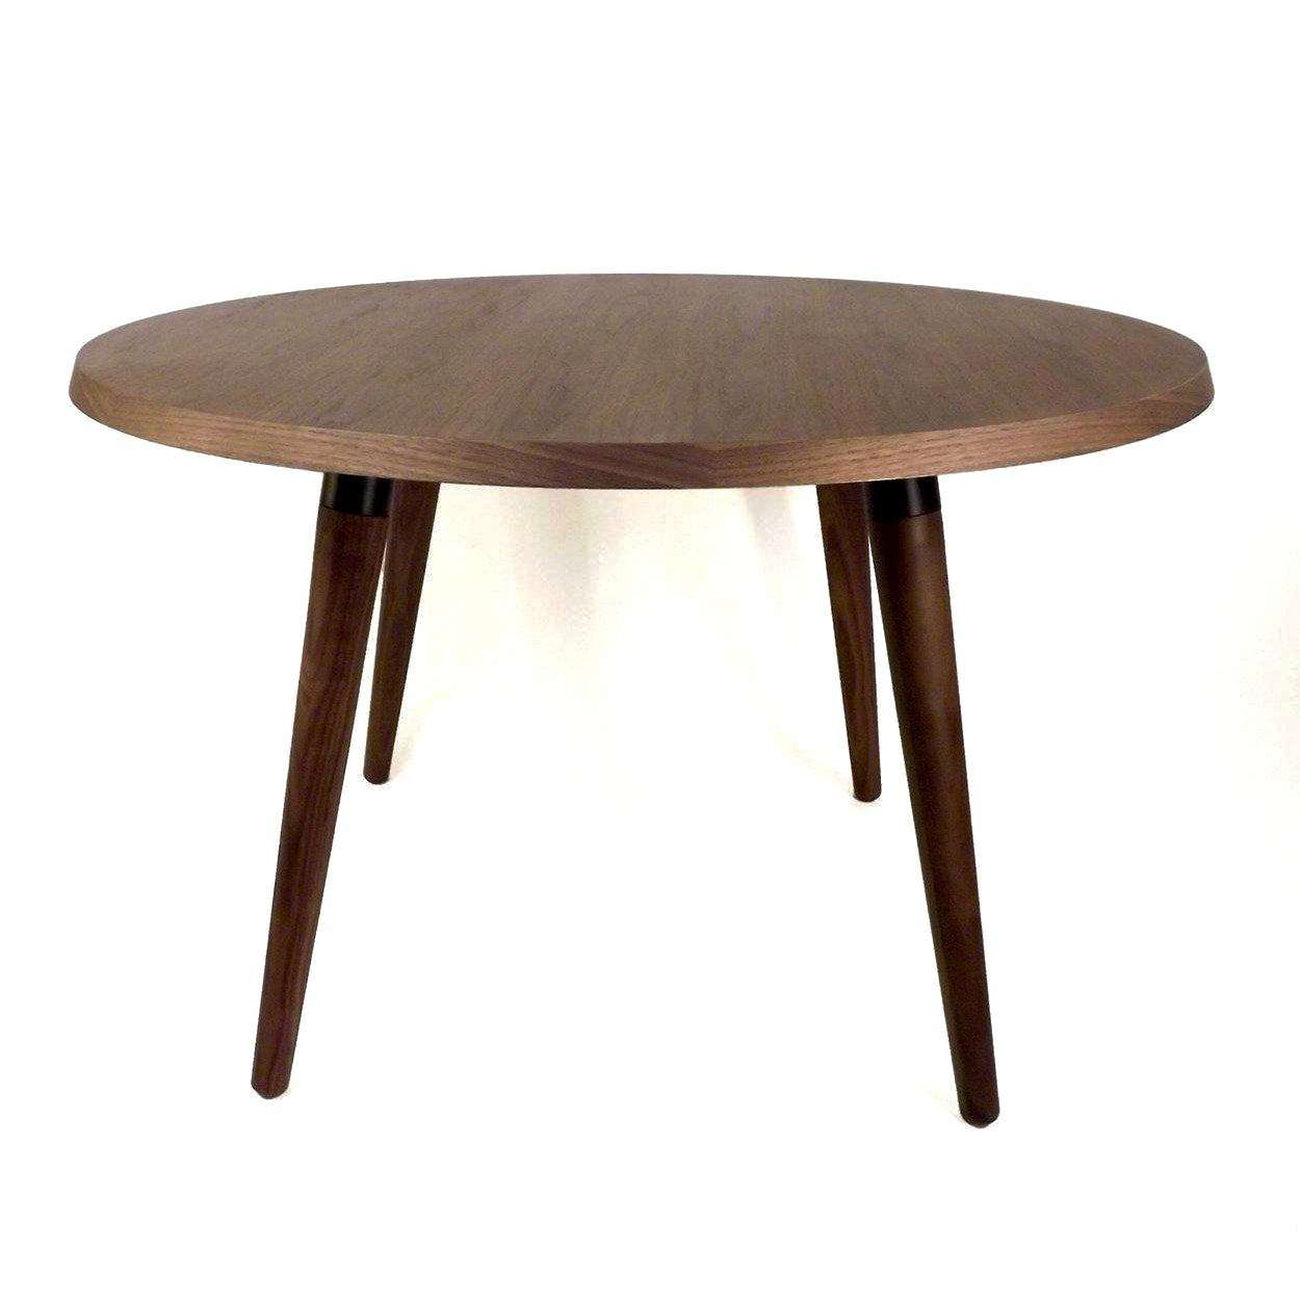 Original Sean Dix Forte Coffee Table Round Glass: Mid-Century Modern Reproduction Round Copine Dining Table